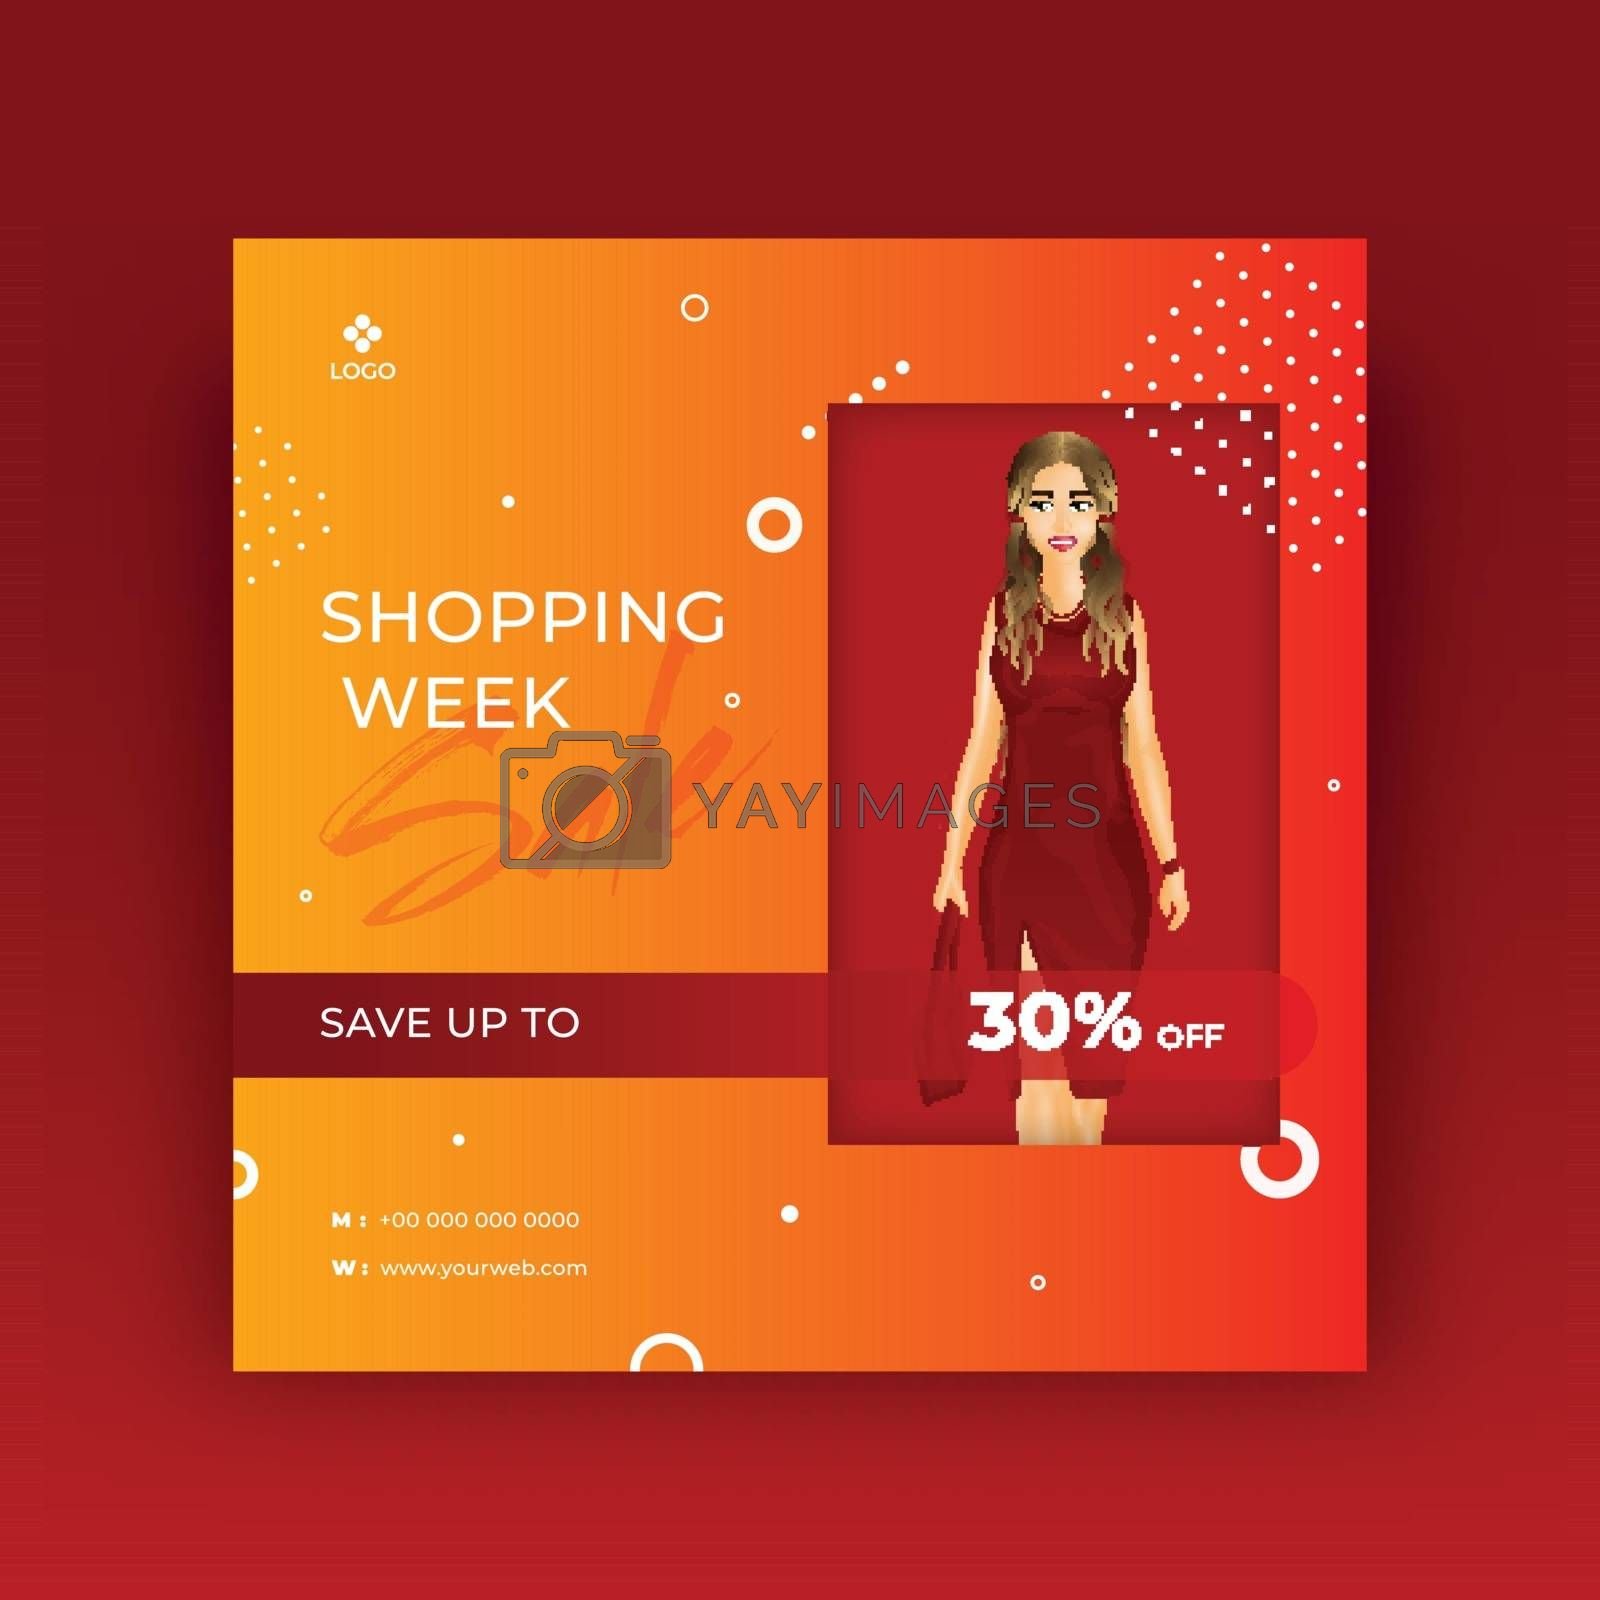 Royalty free image of Shopping Week banner or poster design with beautiful girl illust by aispl